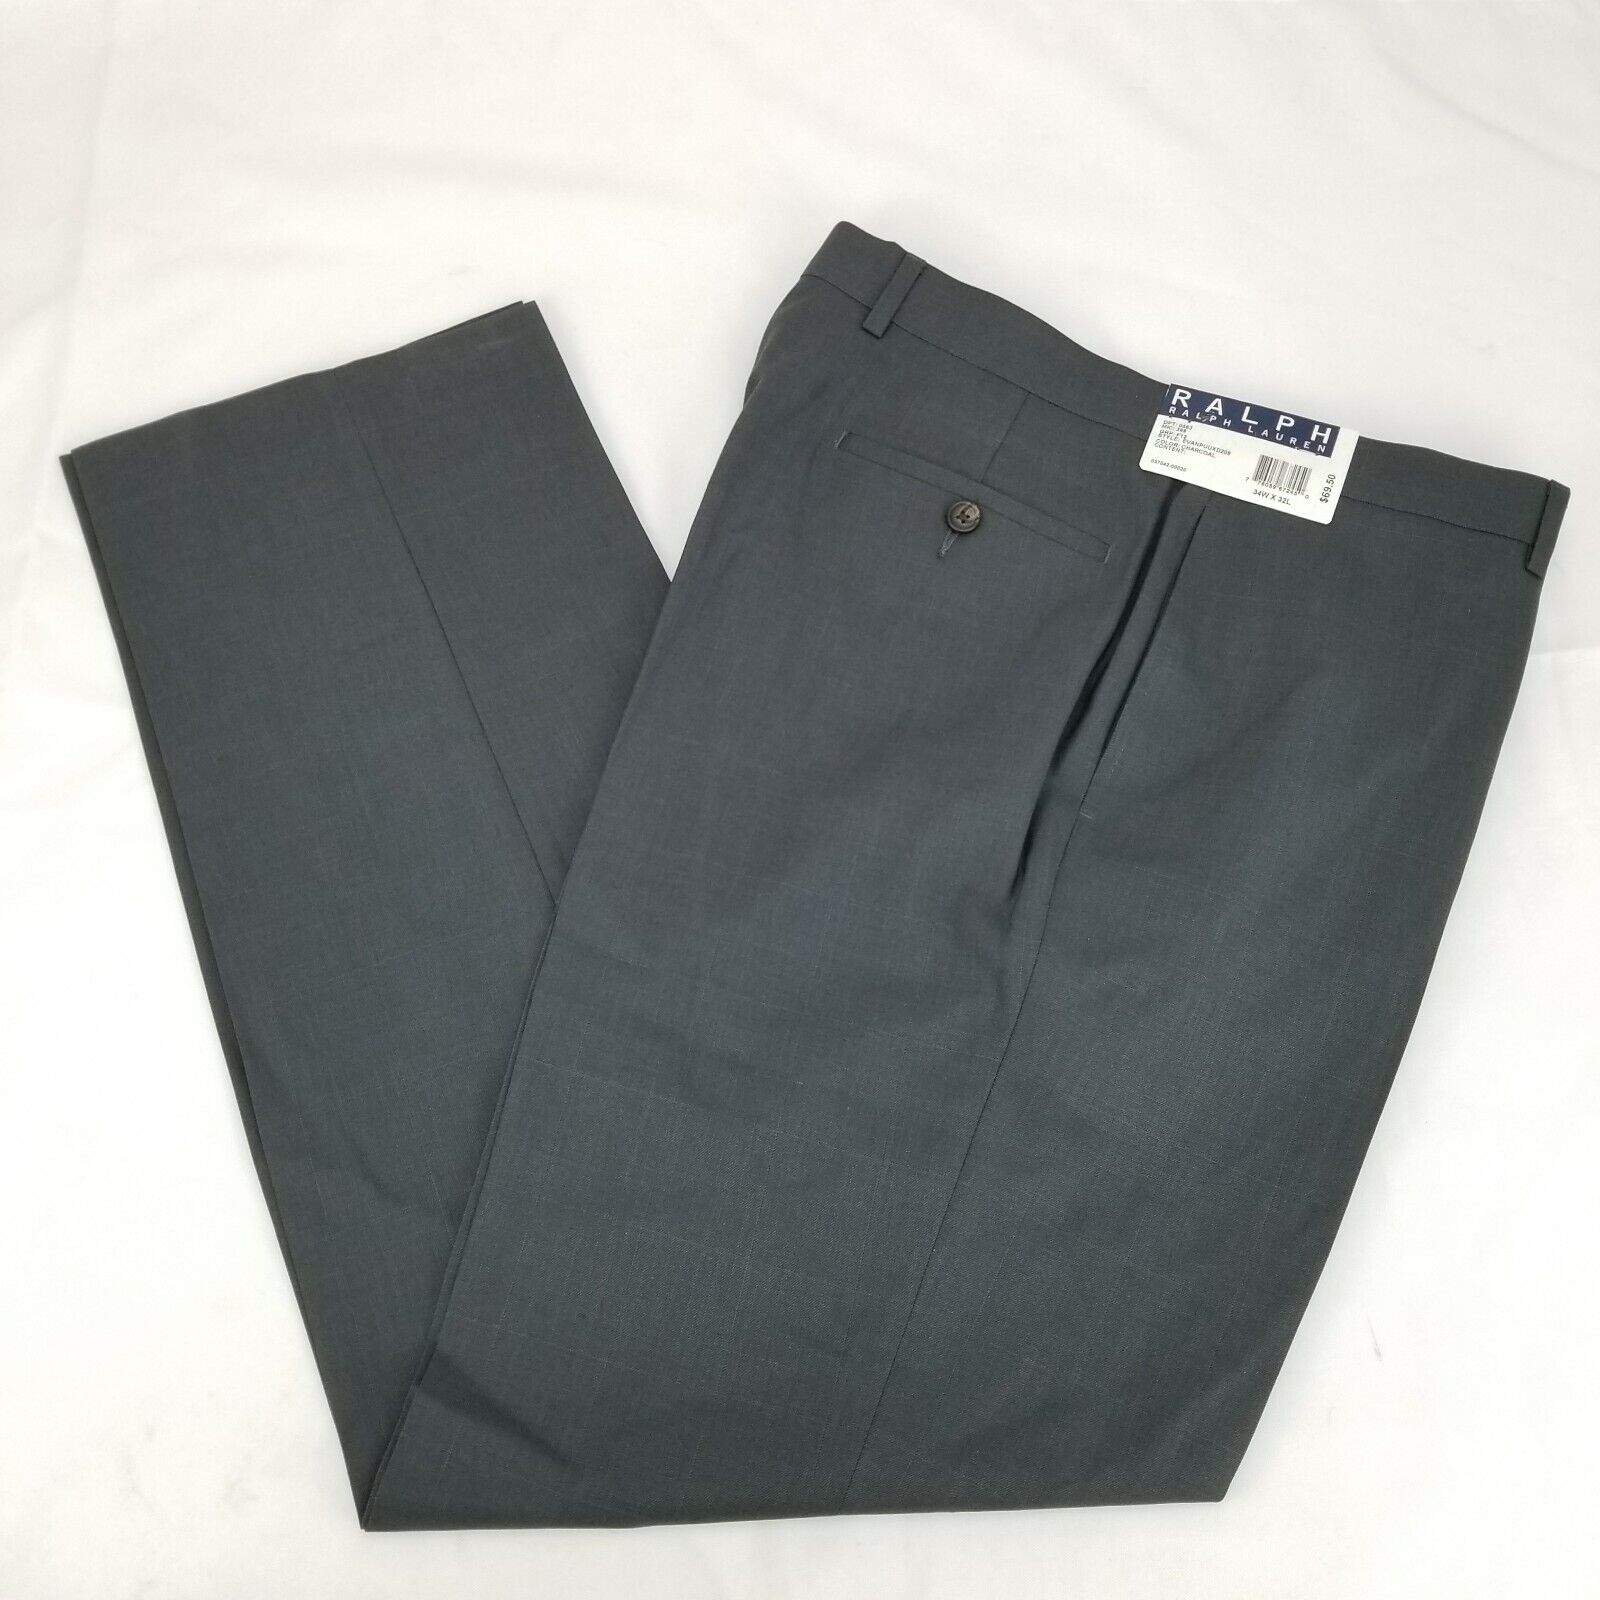 Ralph Lauren Charcoal Mens Dress Pants 36x32 Style Evanpuuxd208 NWTs retail